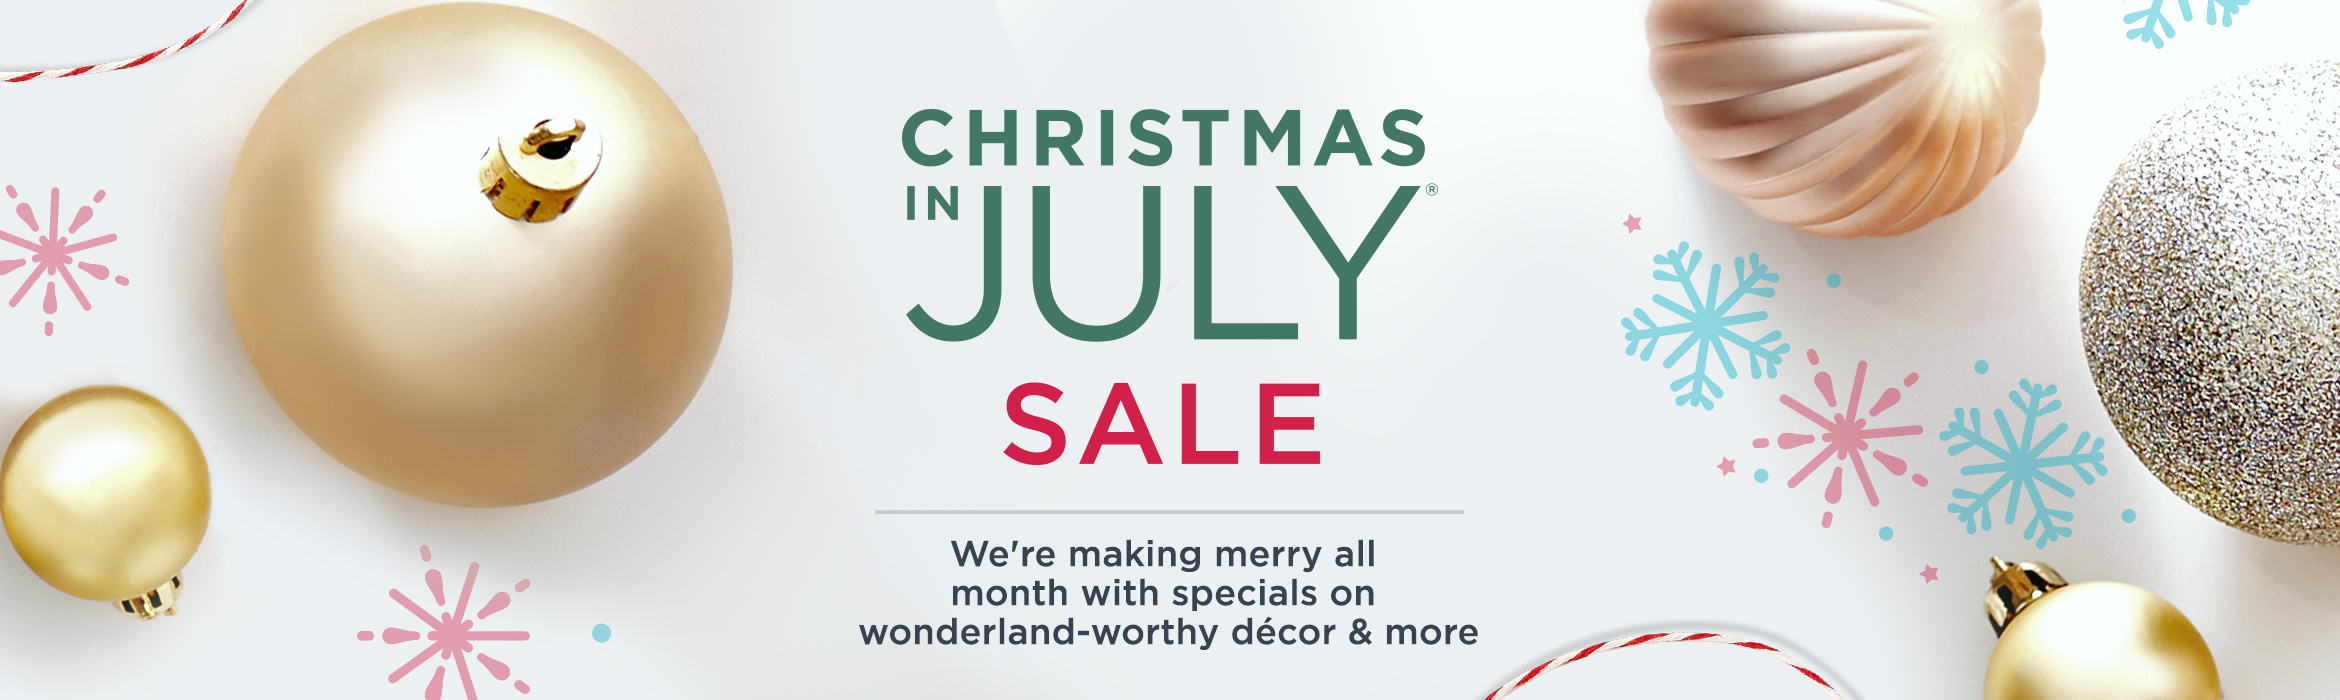 Christmas in July® Sale — We're making merry all month with specials on wonderland-worthy décor & more